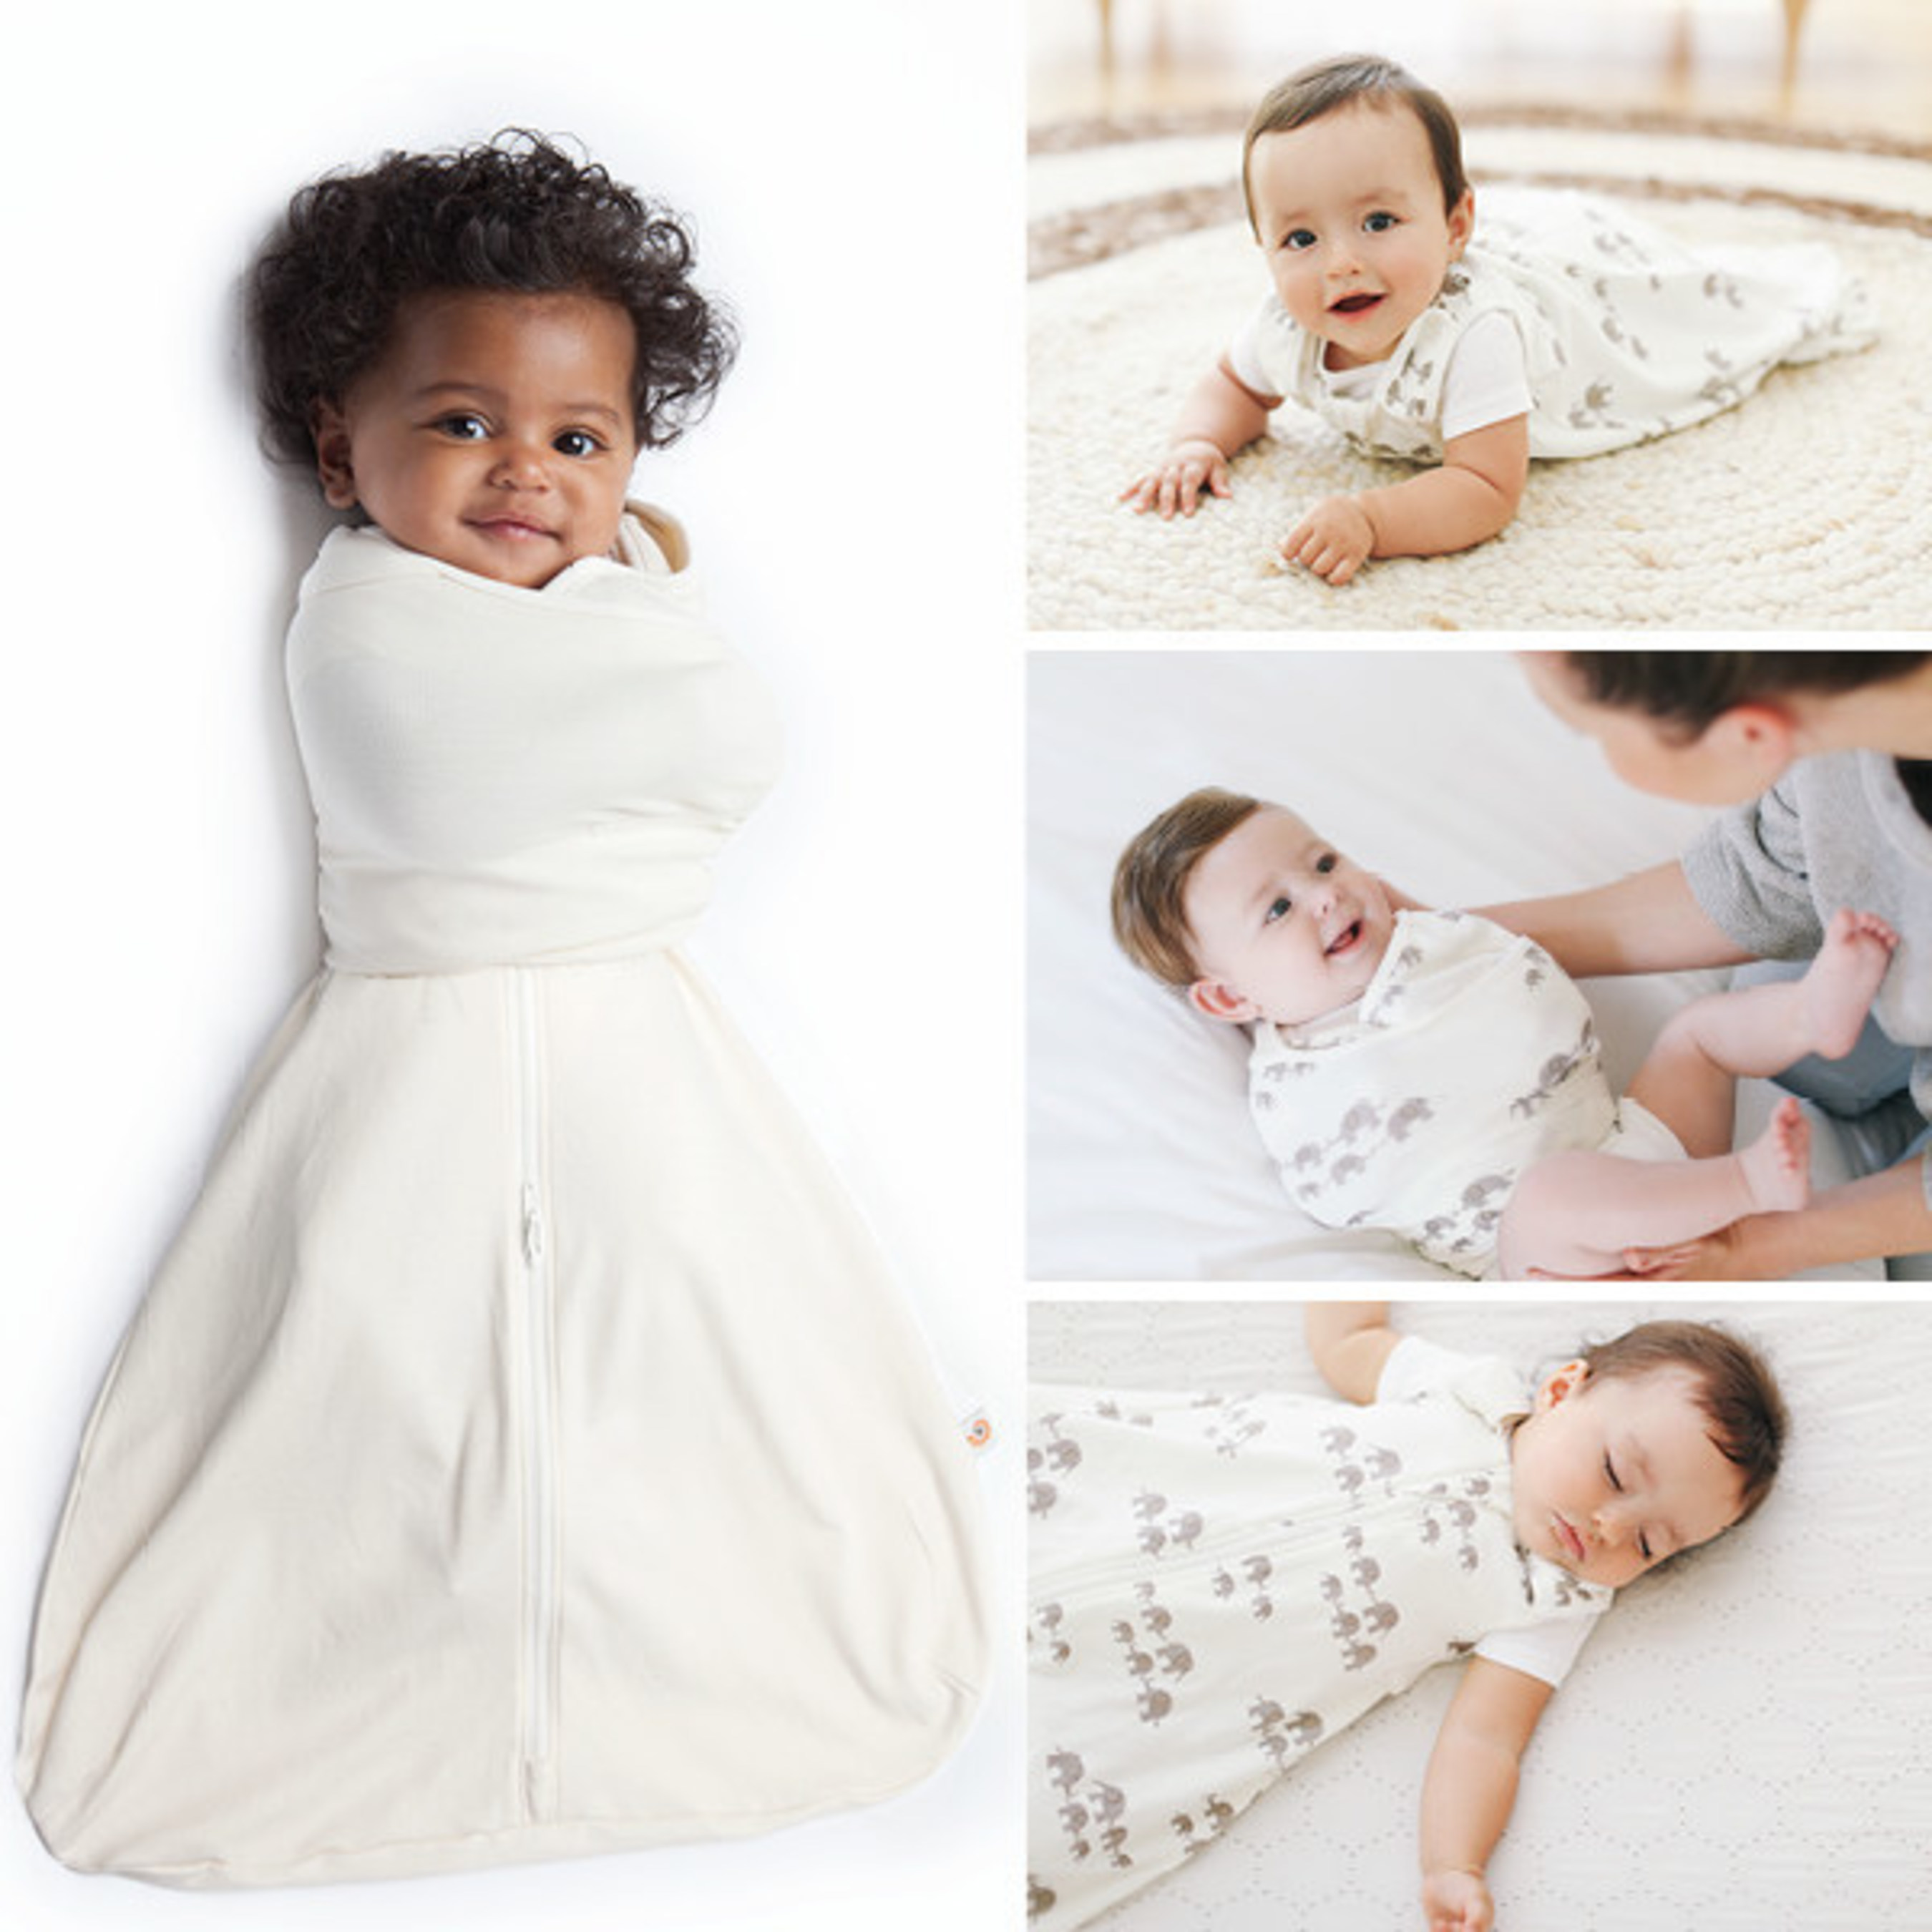 2e0566c872c ERGOBABY DEBUTS INNOVATIVE BABY SLEEPING BAG + SWADDLE SET - A Customizable  Sleep Solution that Grows